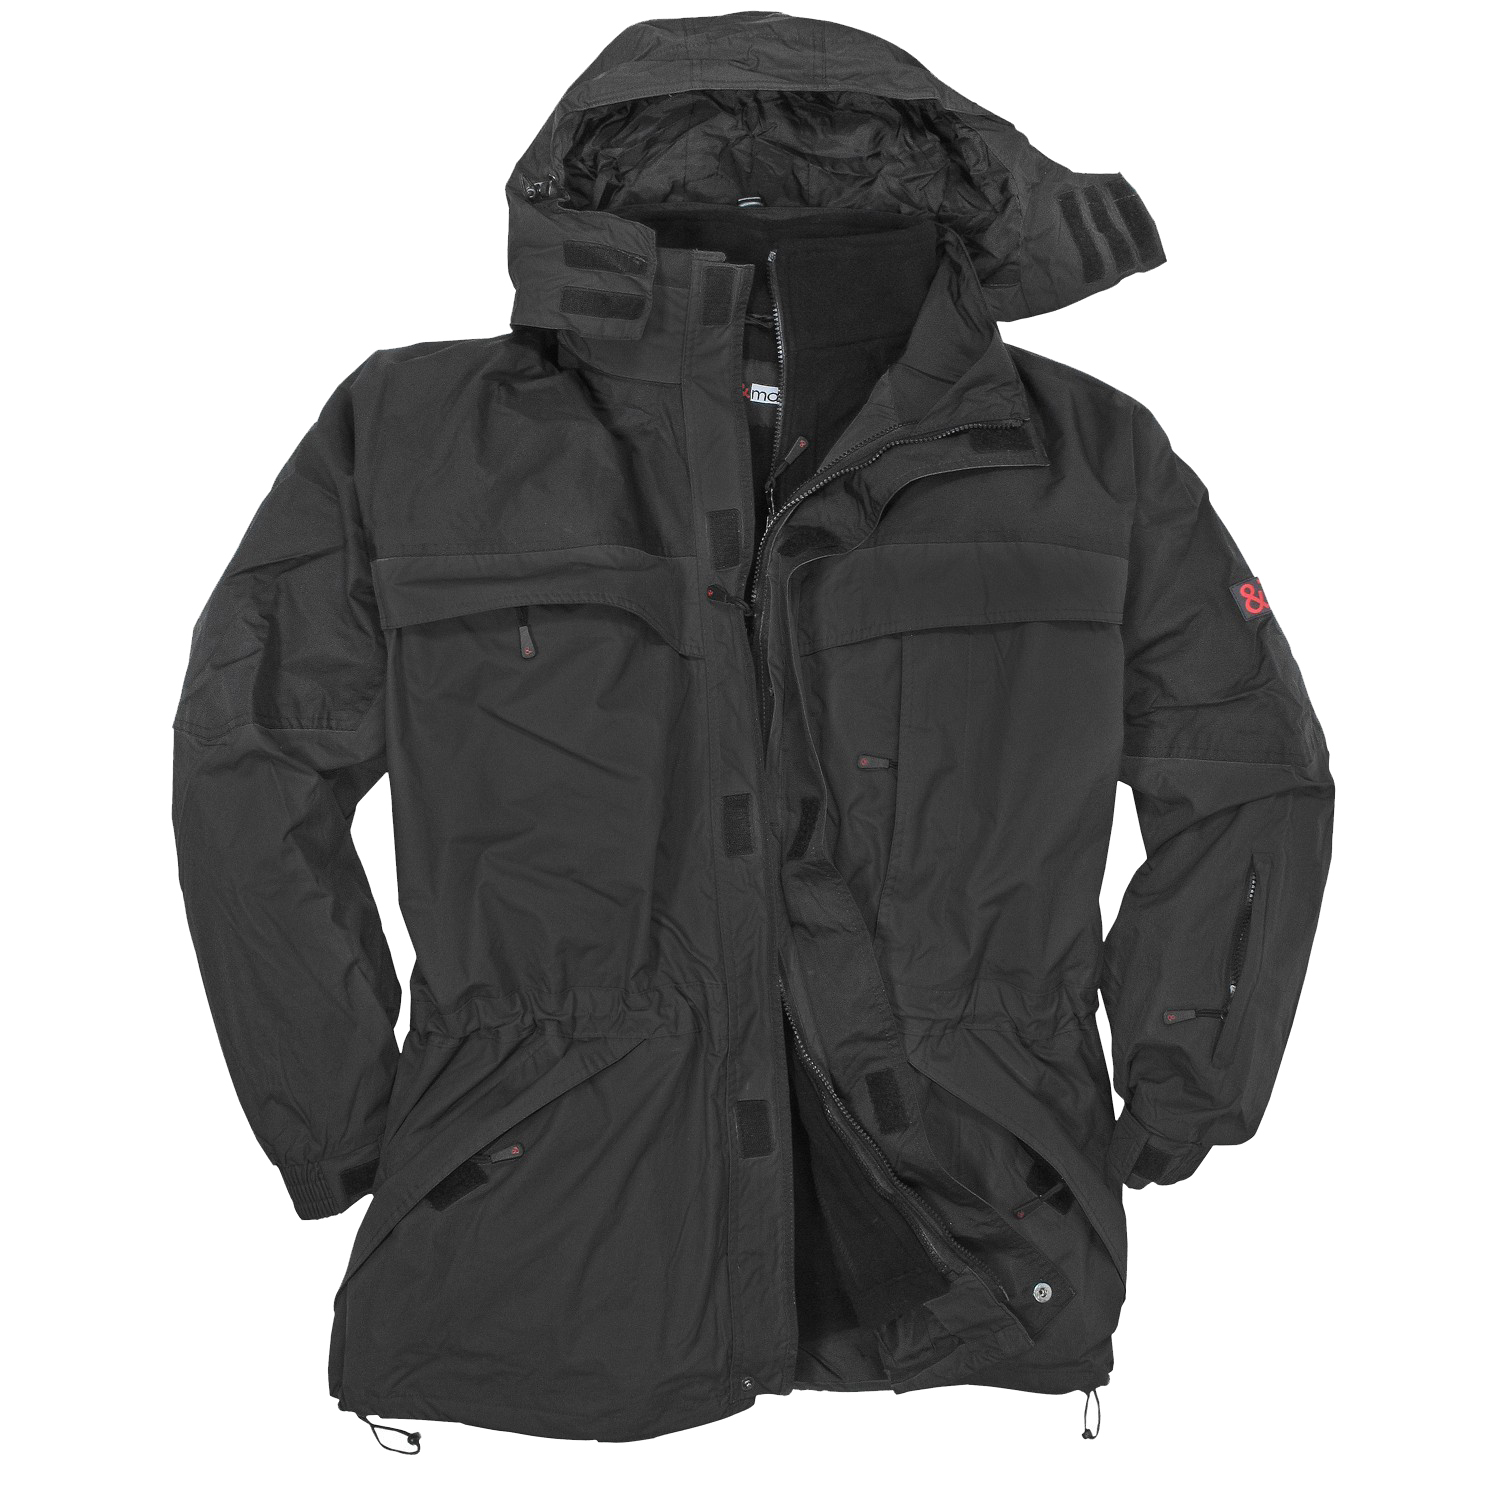 Detail Image to Black 3in1 jacket by marc&mark in extra large sizes until 10XL